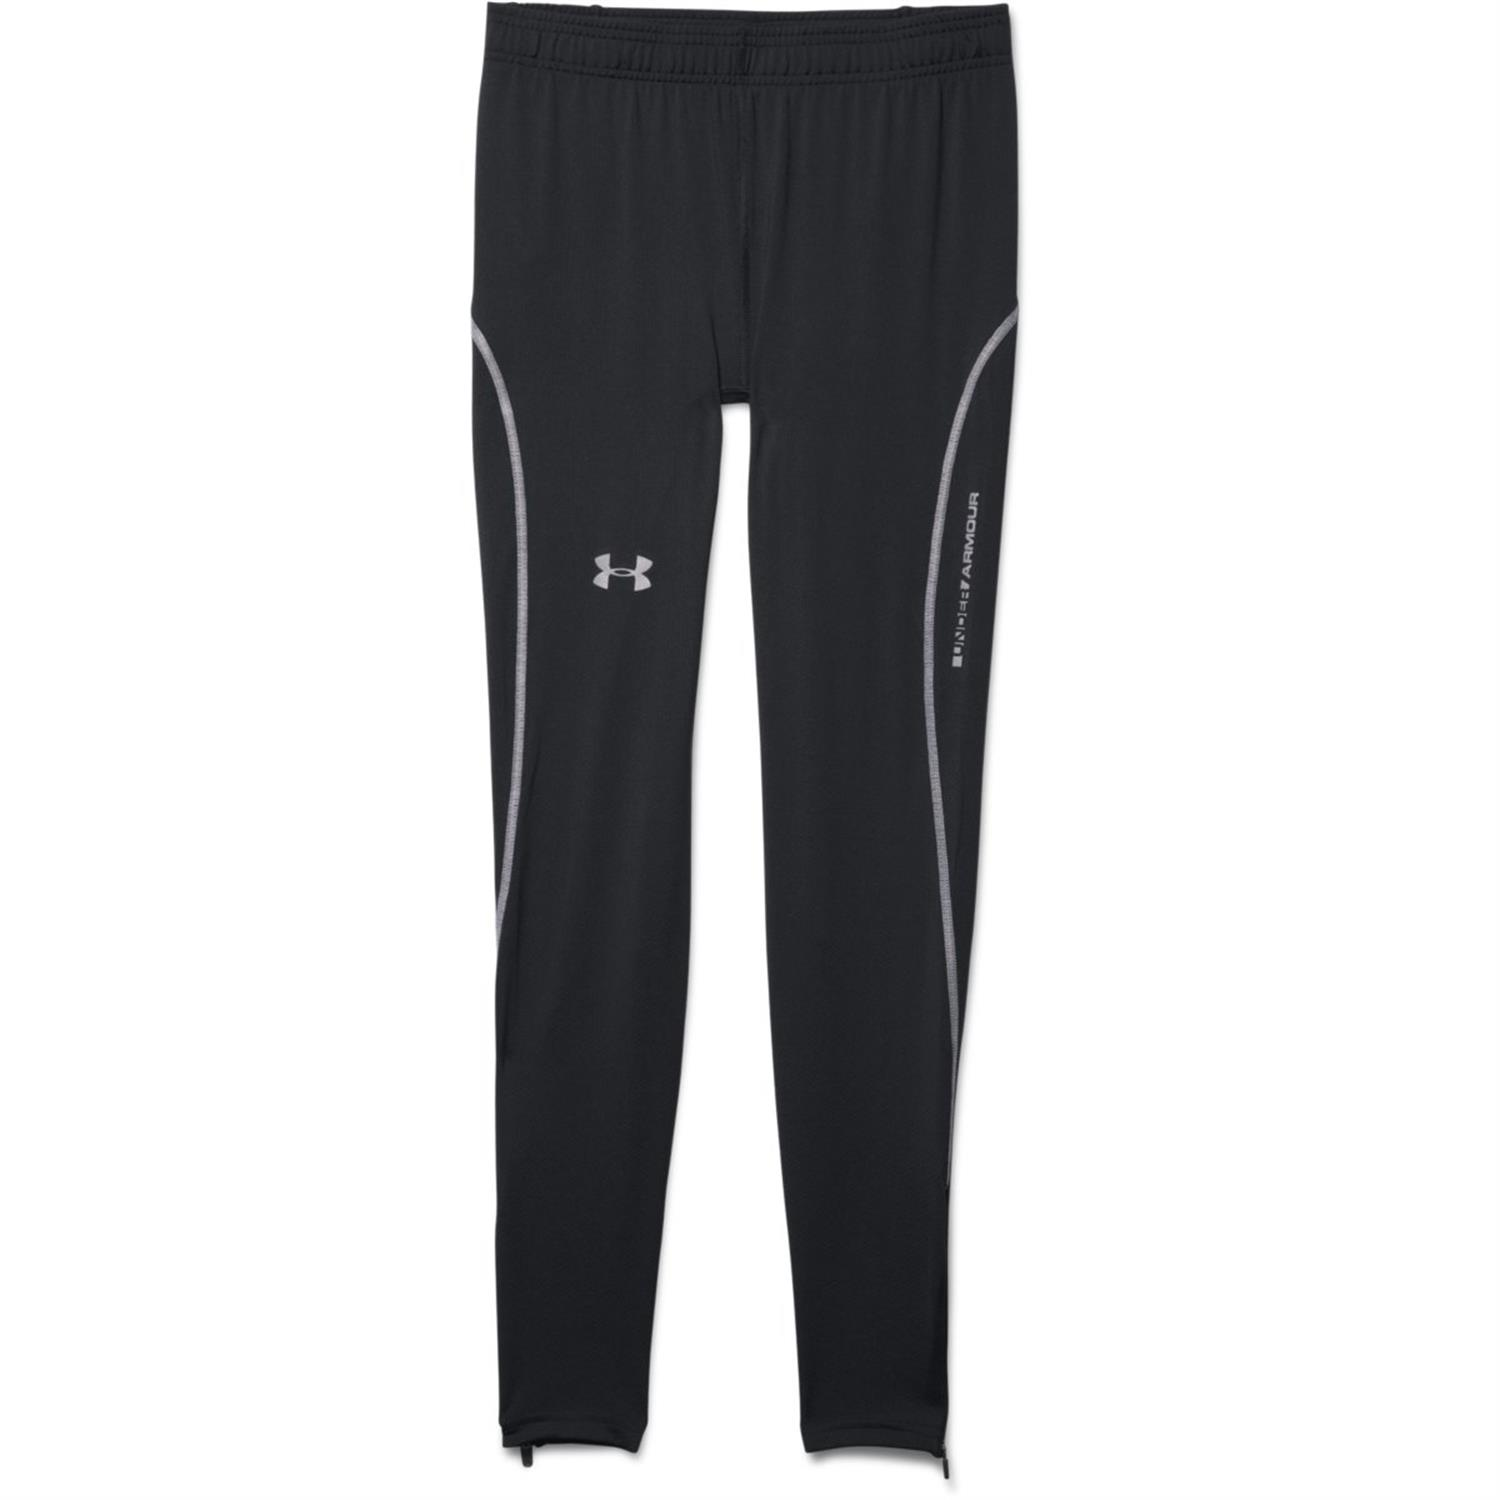 Under Armour Coolswitch Run Tight Nero Uomo 1